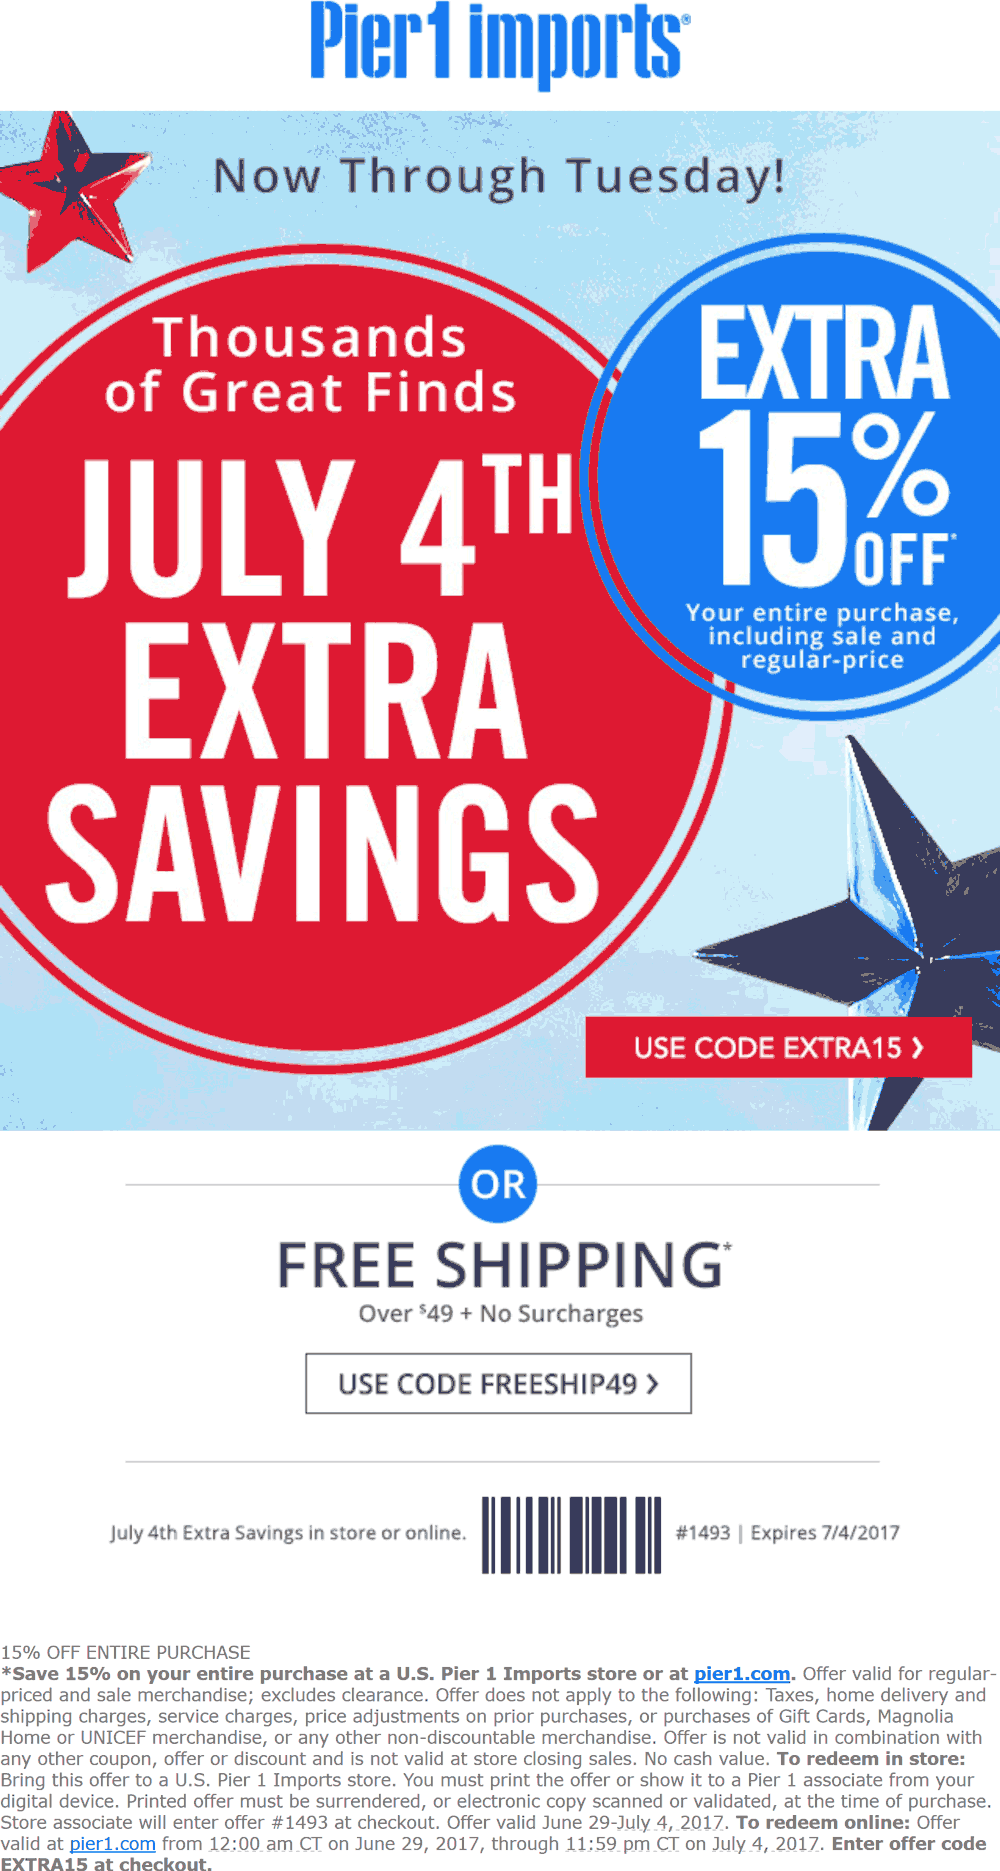 Pinned July 1st 15 Off At Pier1 Imports Or Online Via Promo Code Extra15 Thecouponsapp Shopping Coupons Coupon Apps Coding